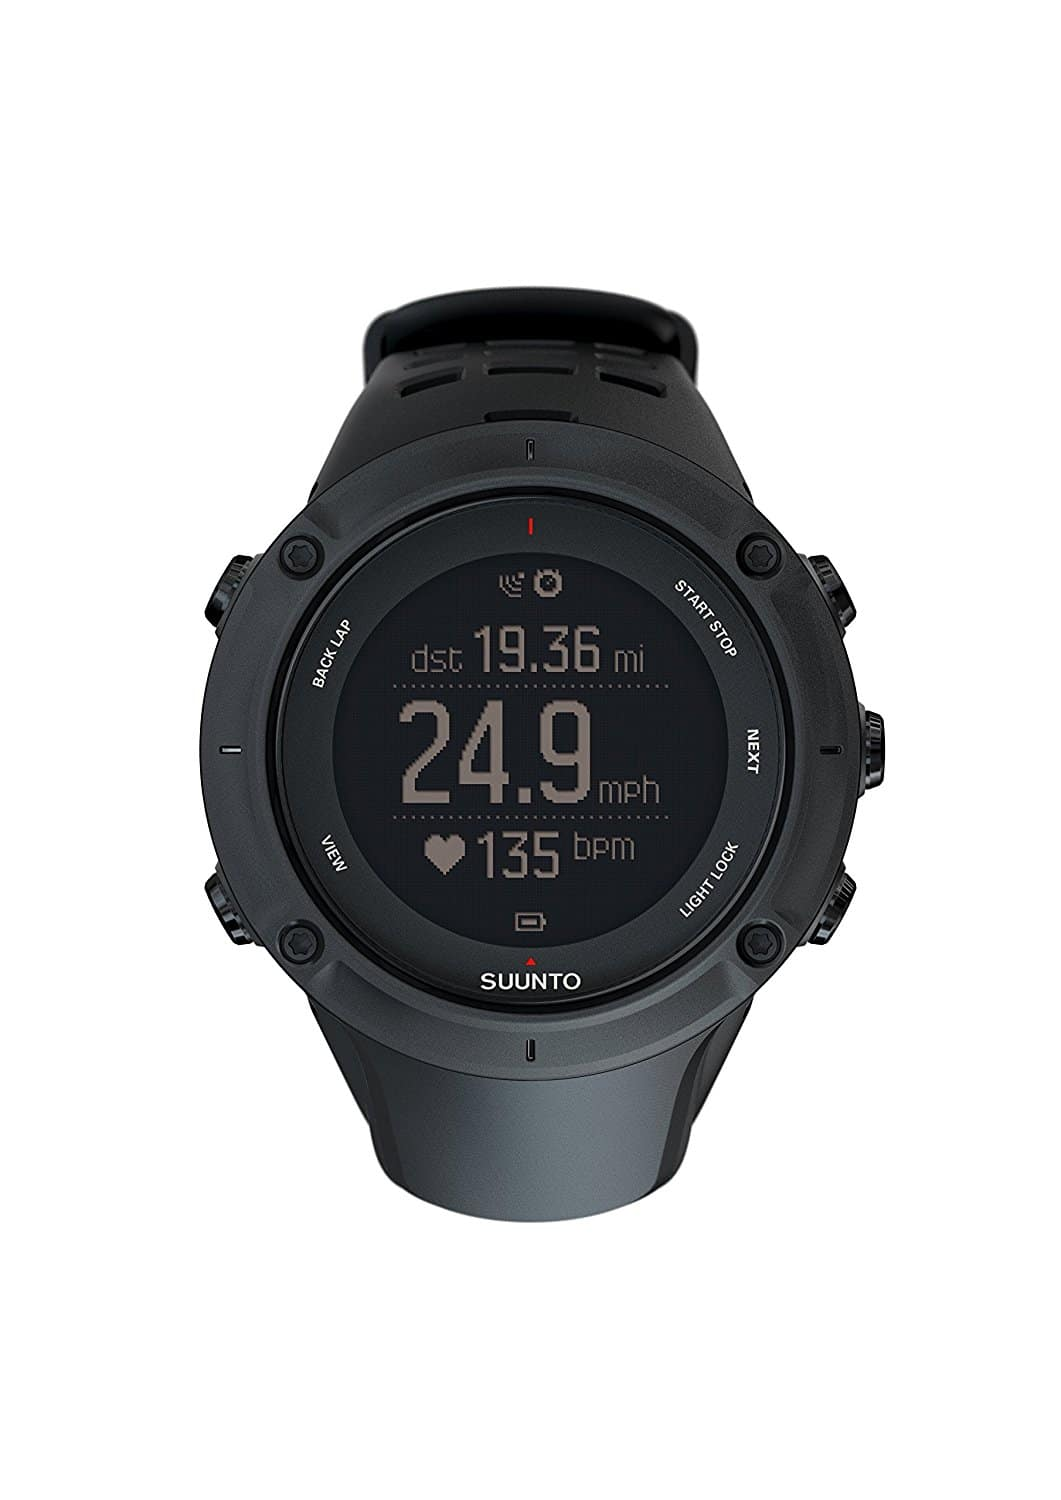 Suunto Ambit3 Peak - Weatherproof Design